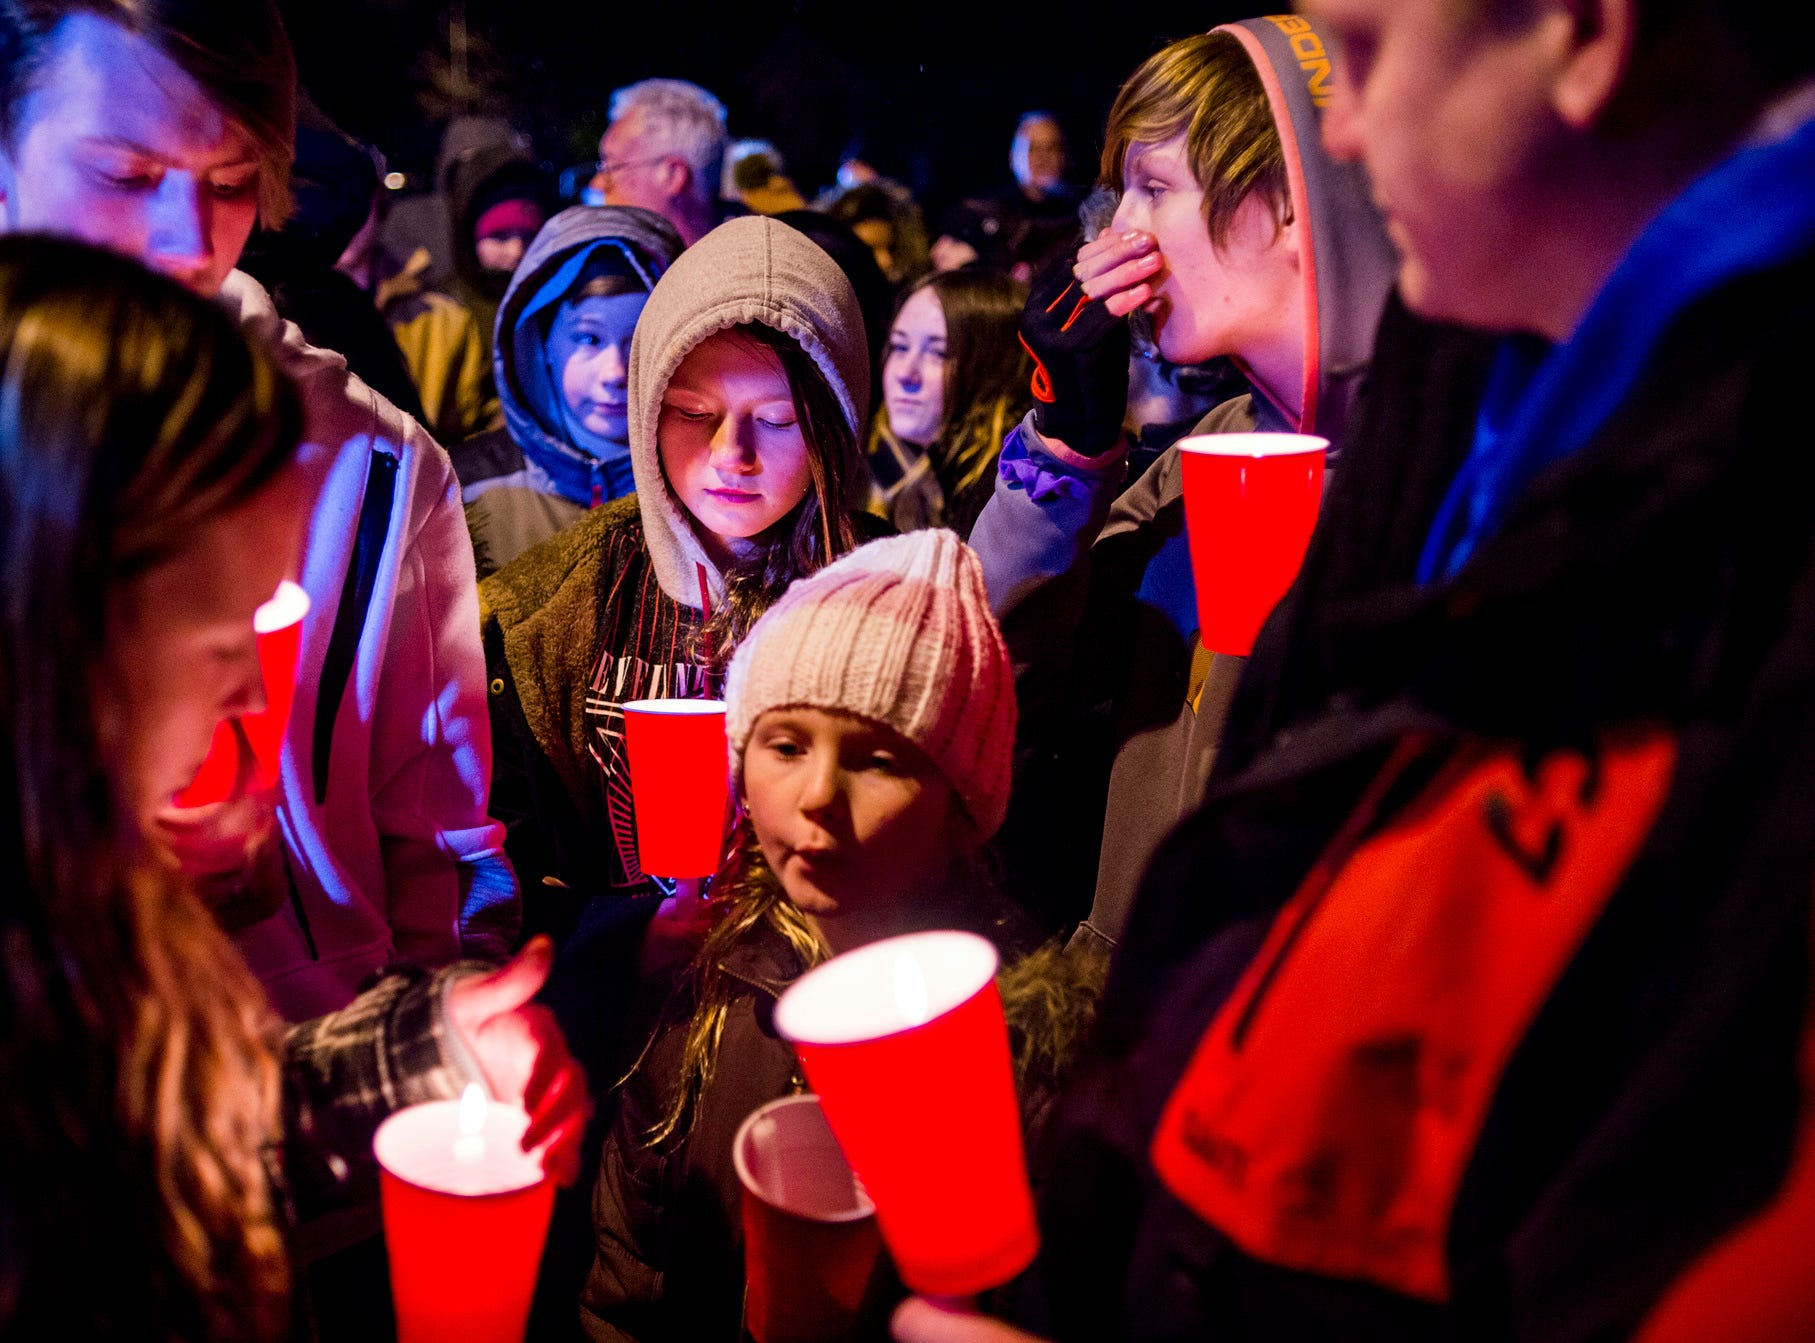 Makenzie Craven, 10, of Imlay City, bows her head alongside her family as she commemorates the lives of several children who died in an early morning fire at a mobile home park Tuesday, Feb. 26, 2019, in Imlay City, Michigan. Other Craven family members pictured include Makenzie's mother Melissa, father Michael Sr., sister Millie and brothers Michael Jr. and Haiden.